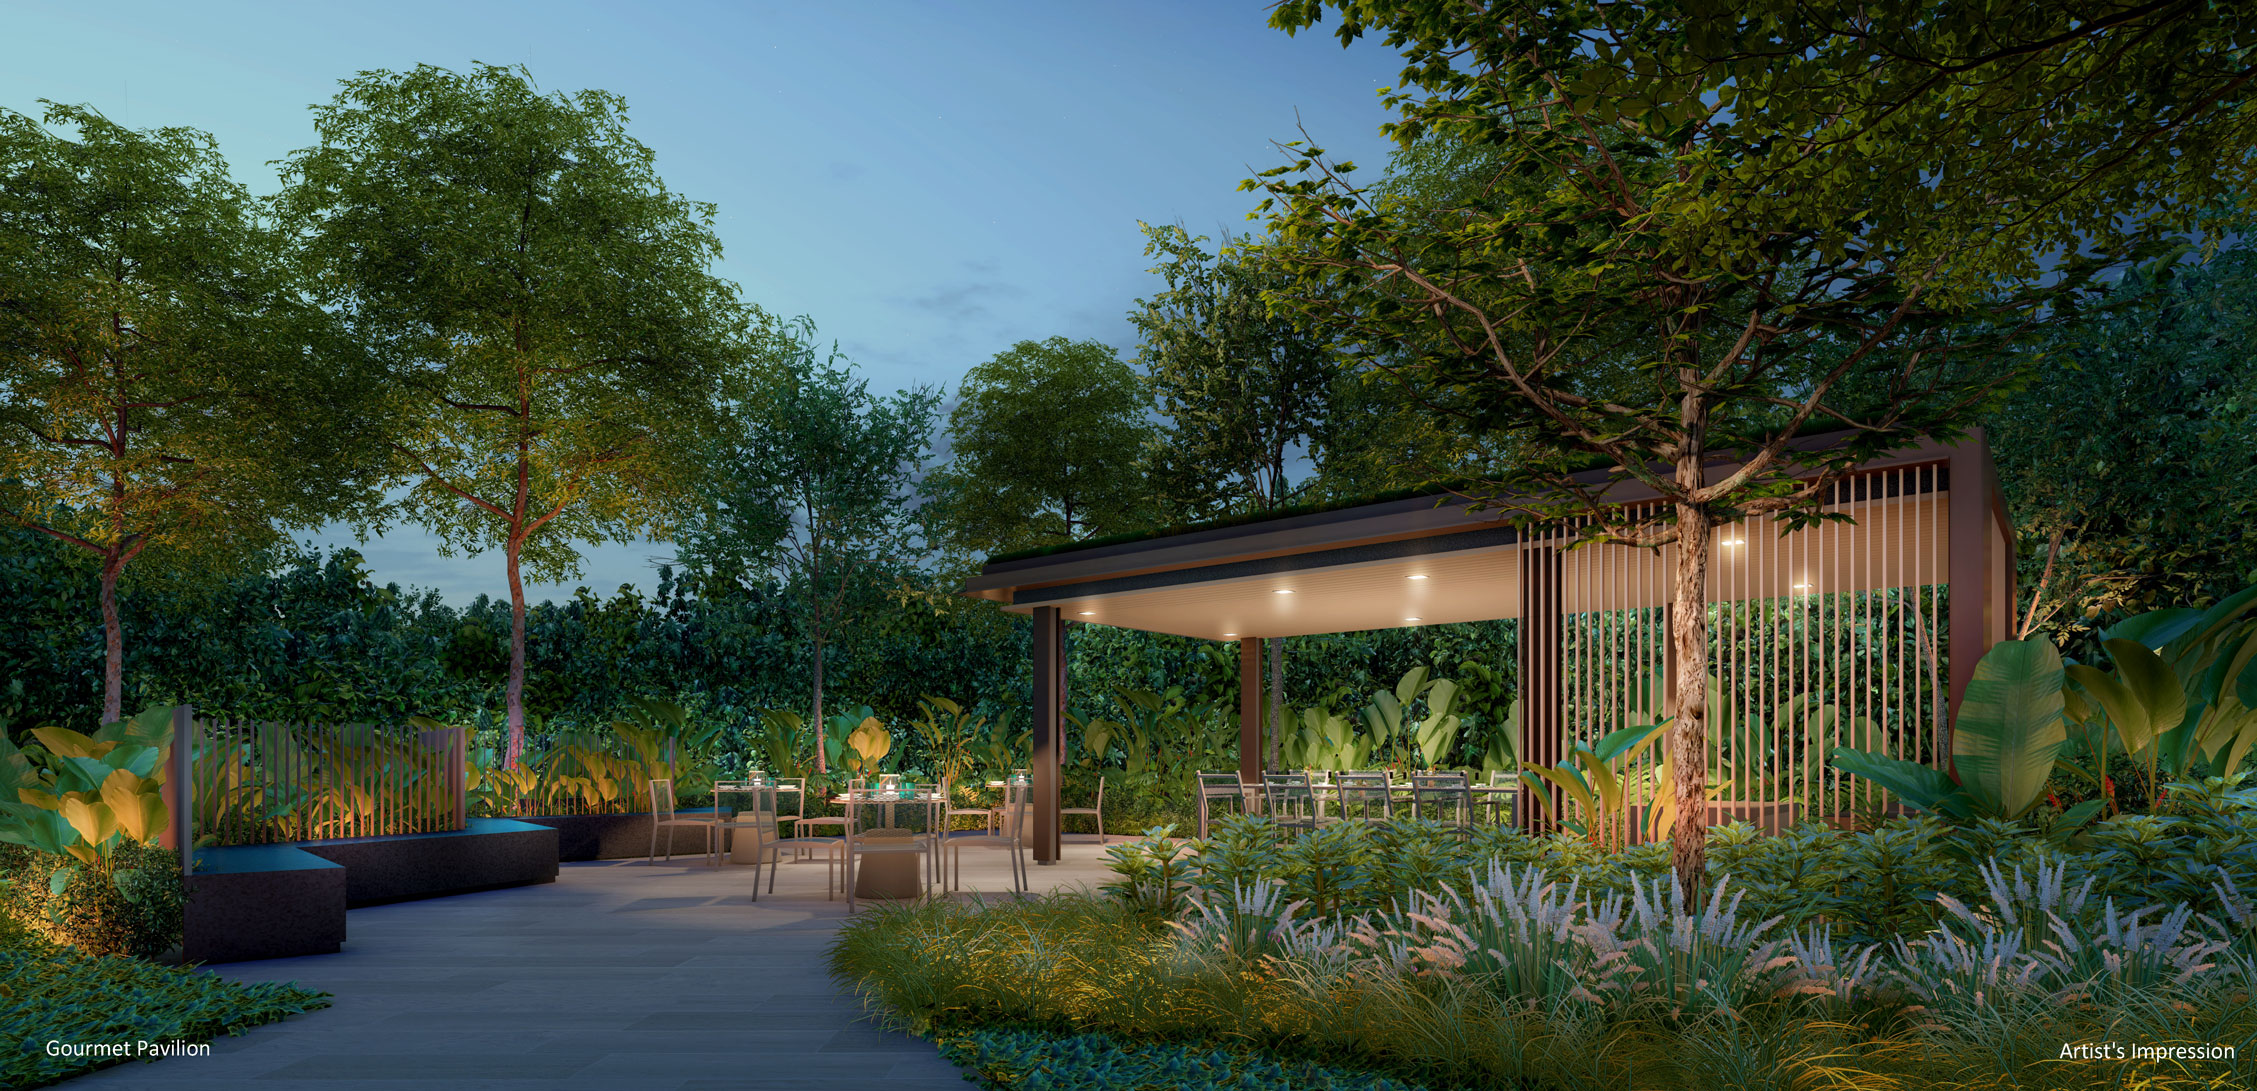 the-watergardens-at-canberra-mrt-Gourmet-Pavilion-singapore